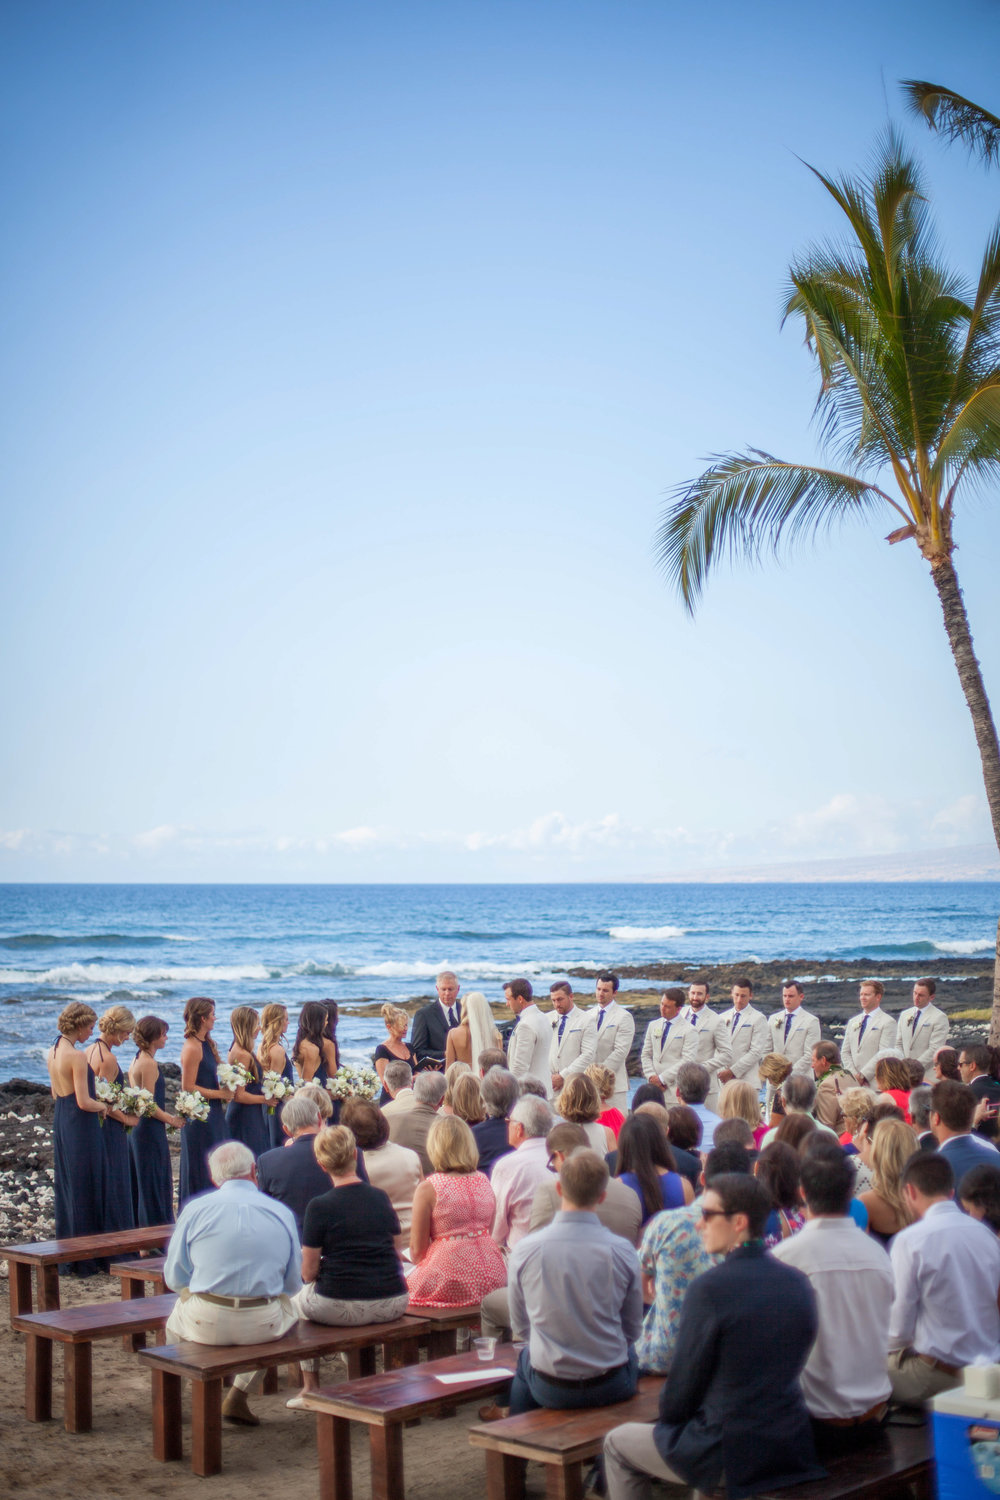 big island hawaii mauna lani resort wedding © kelilina photography 20160131161842-1.jpg